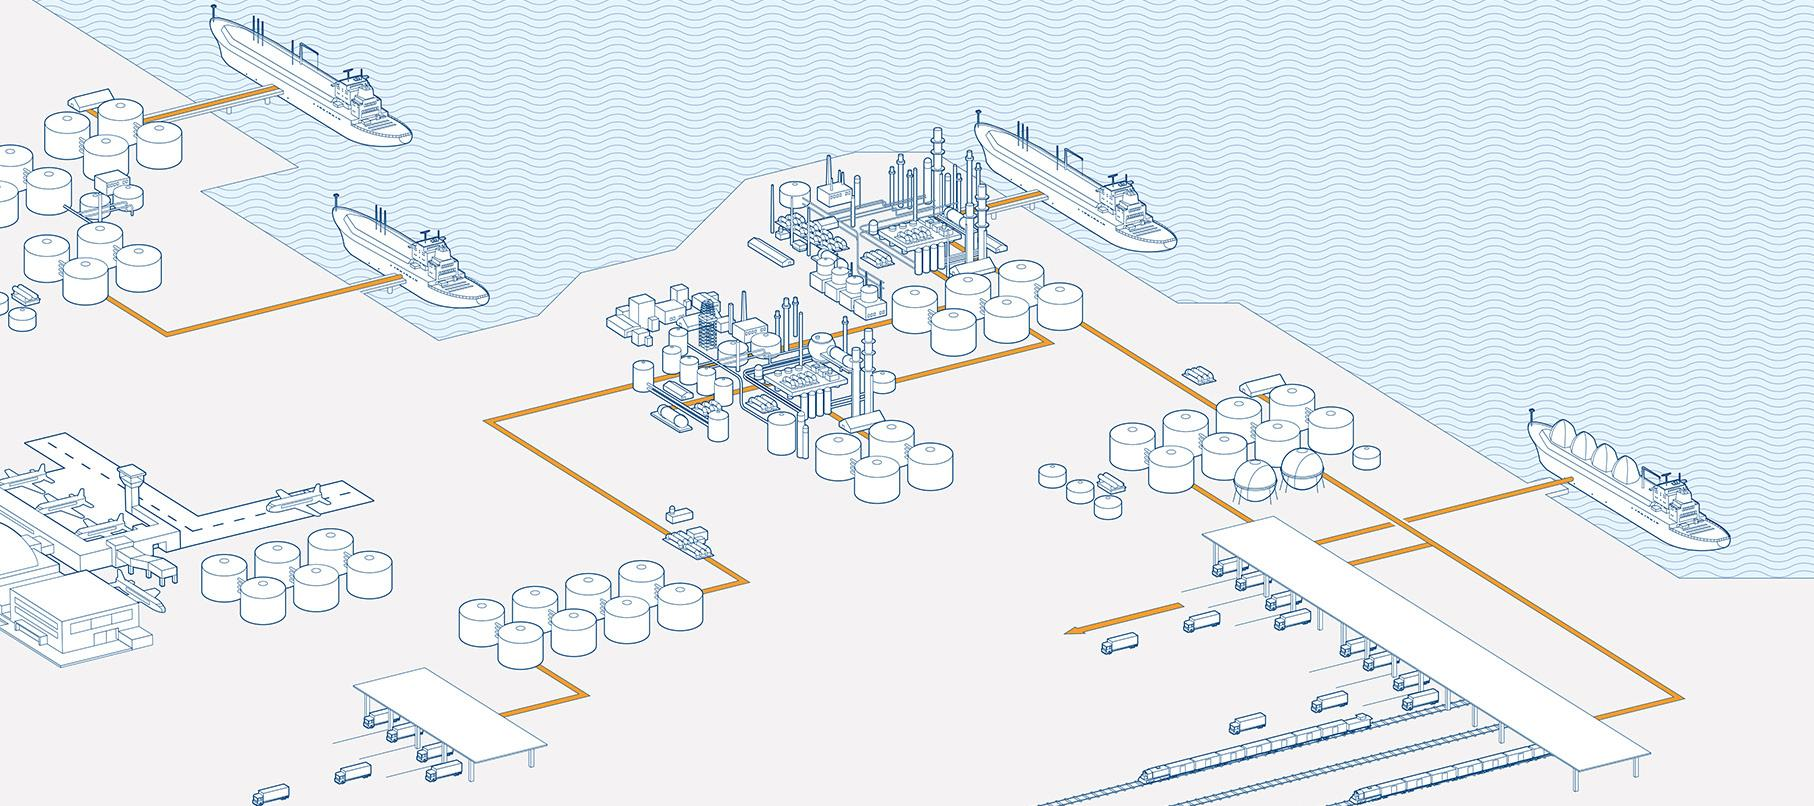 medium resolution of abb provides solutions for the whole hydrocarbon supply chain including production processing transportation storage and distribution